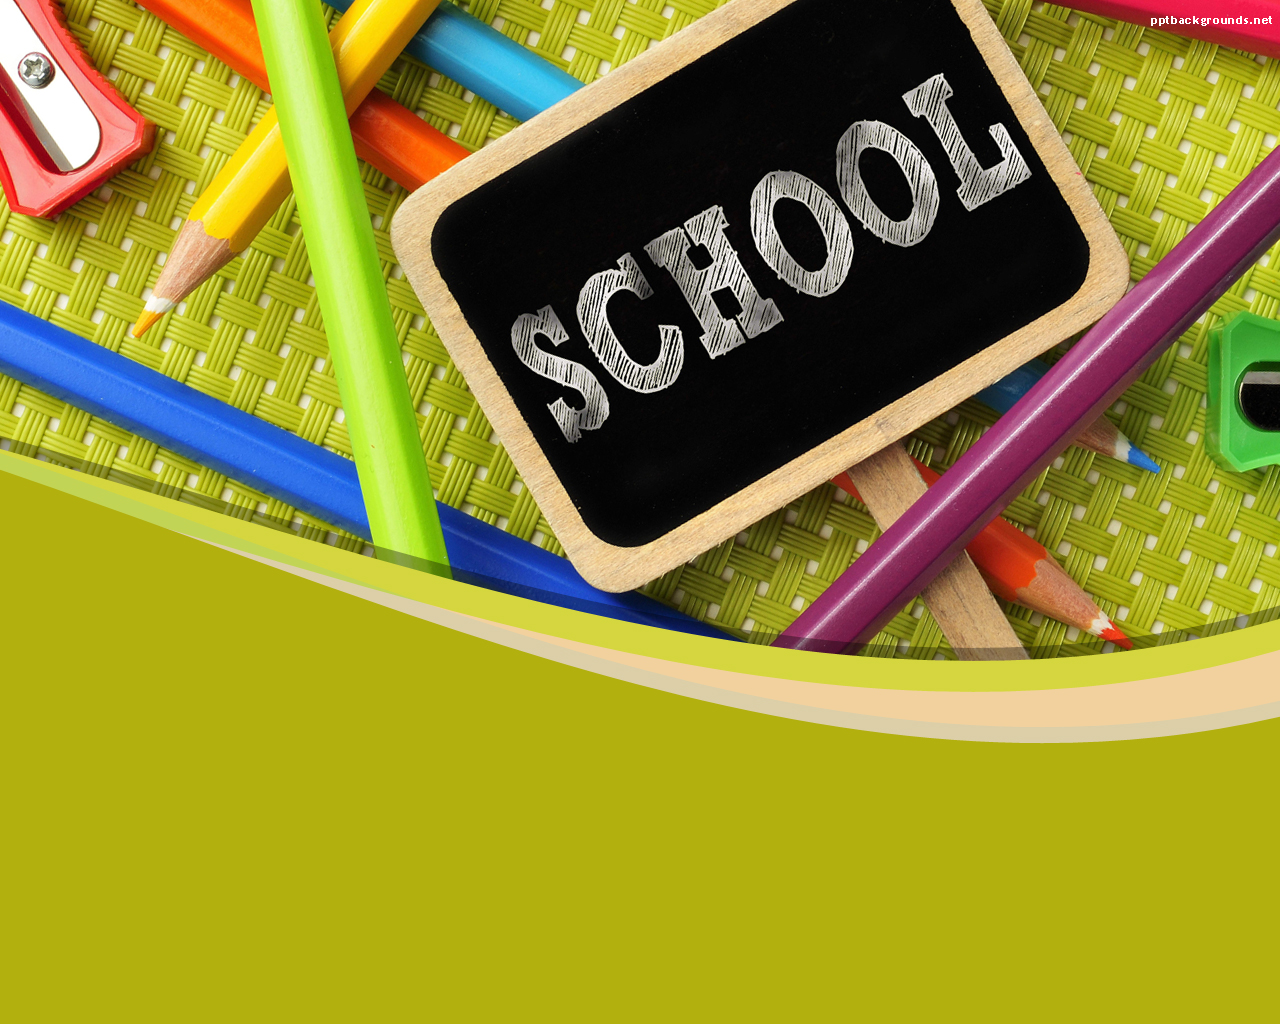 School Powerpoint Background Powerpoint Backgrounds For Free Powerpoint Templates